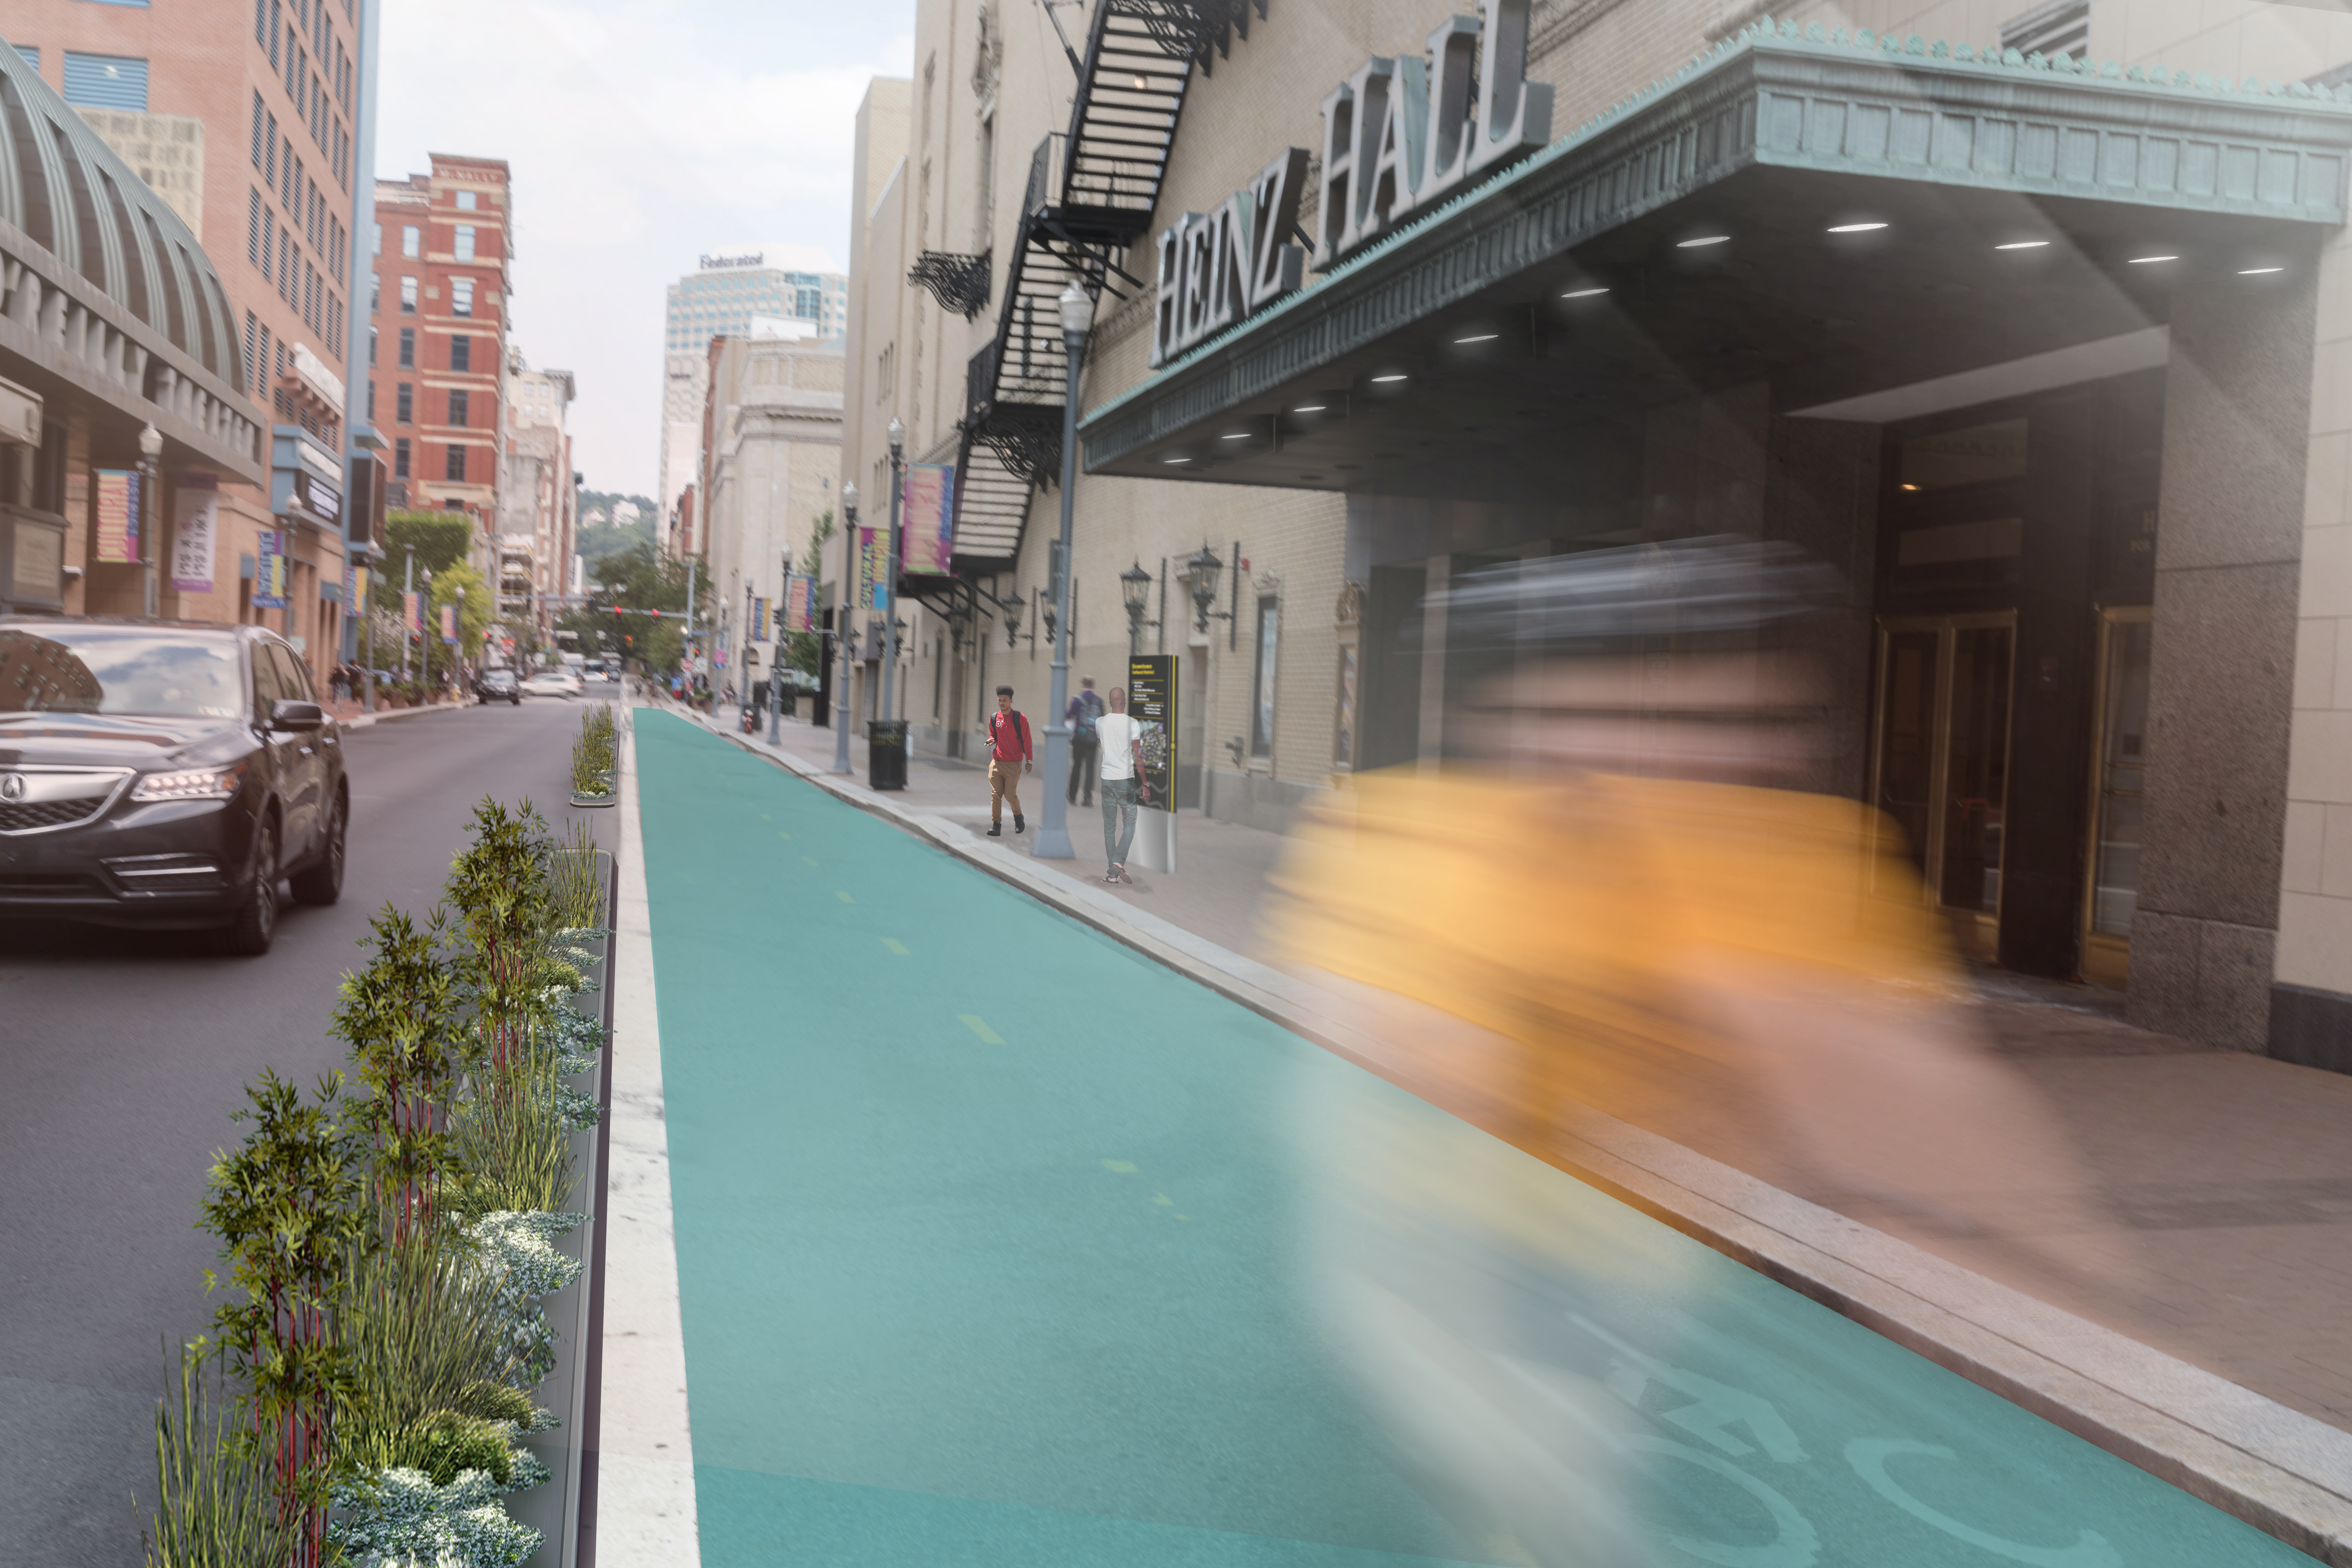 Future concept of bike lane in Downtown